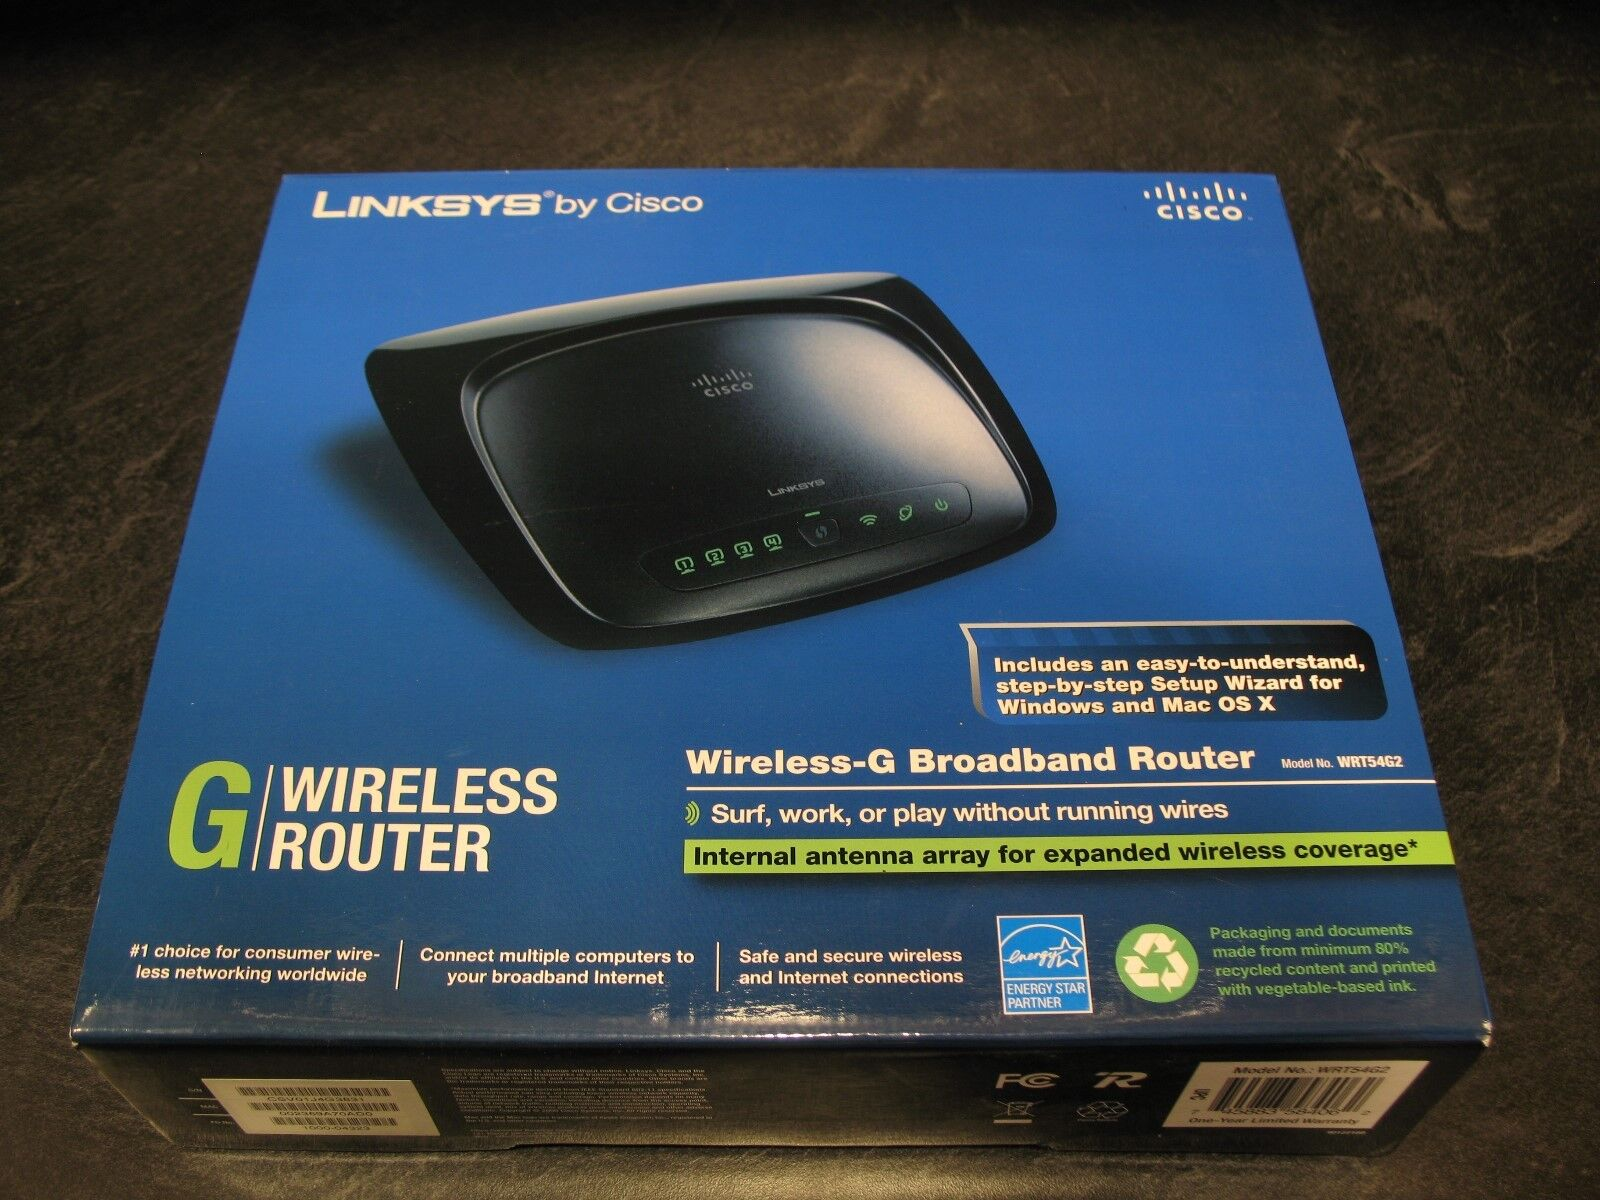 UPC 745883584093 - Cisco-Linksys WRT54G2 Wireless-G